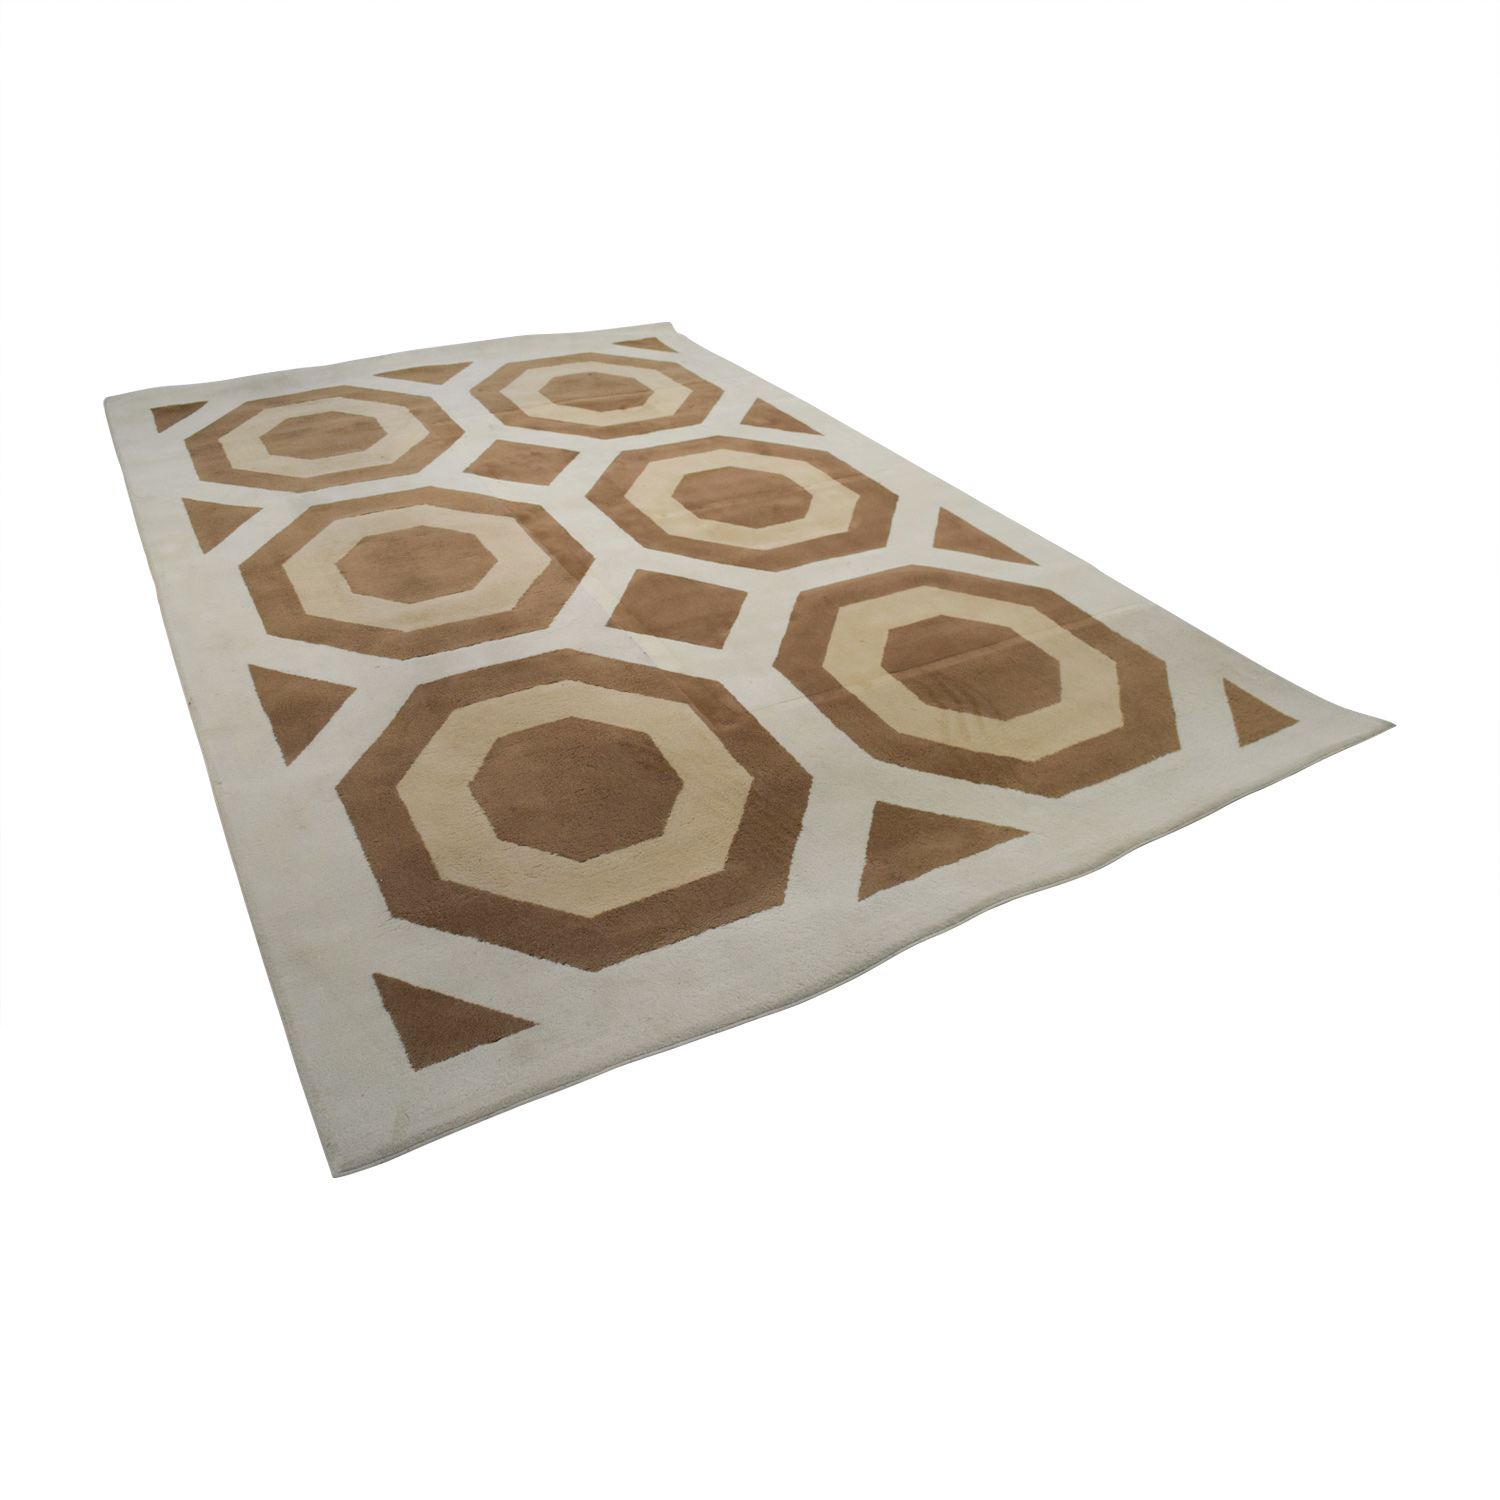 Ethan Allen Ethan Allen Brown Beige and White Rug Rugs